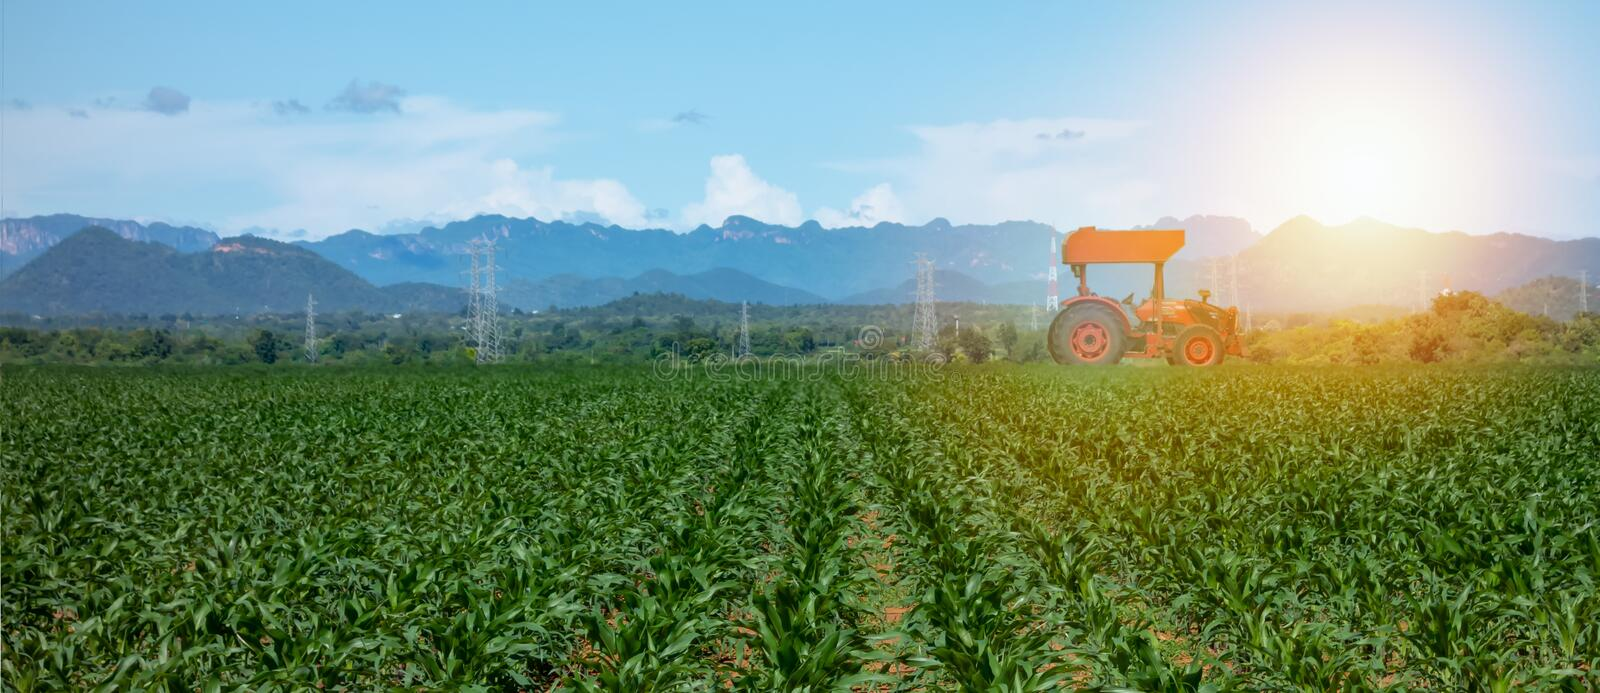 Smart farming with agriculture industry 4.0 concept, farmer use tractor in the farm for Plowing, Harrowing, Sowing Intercultivati royalty free stock image